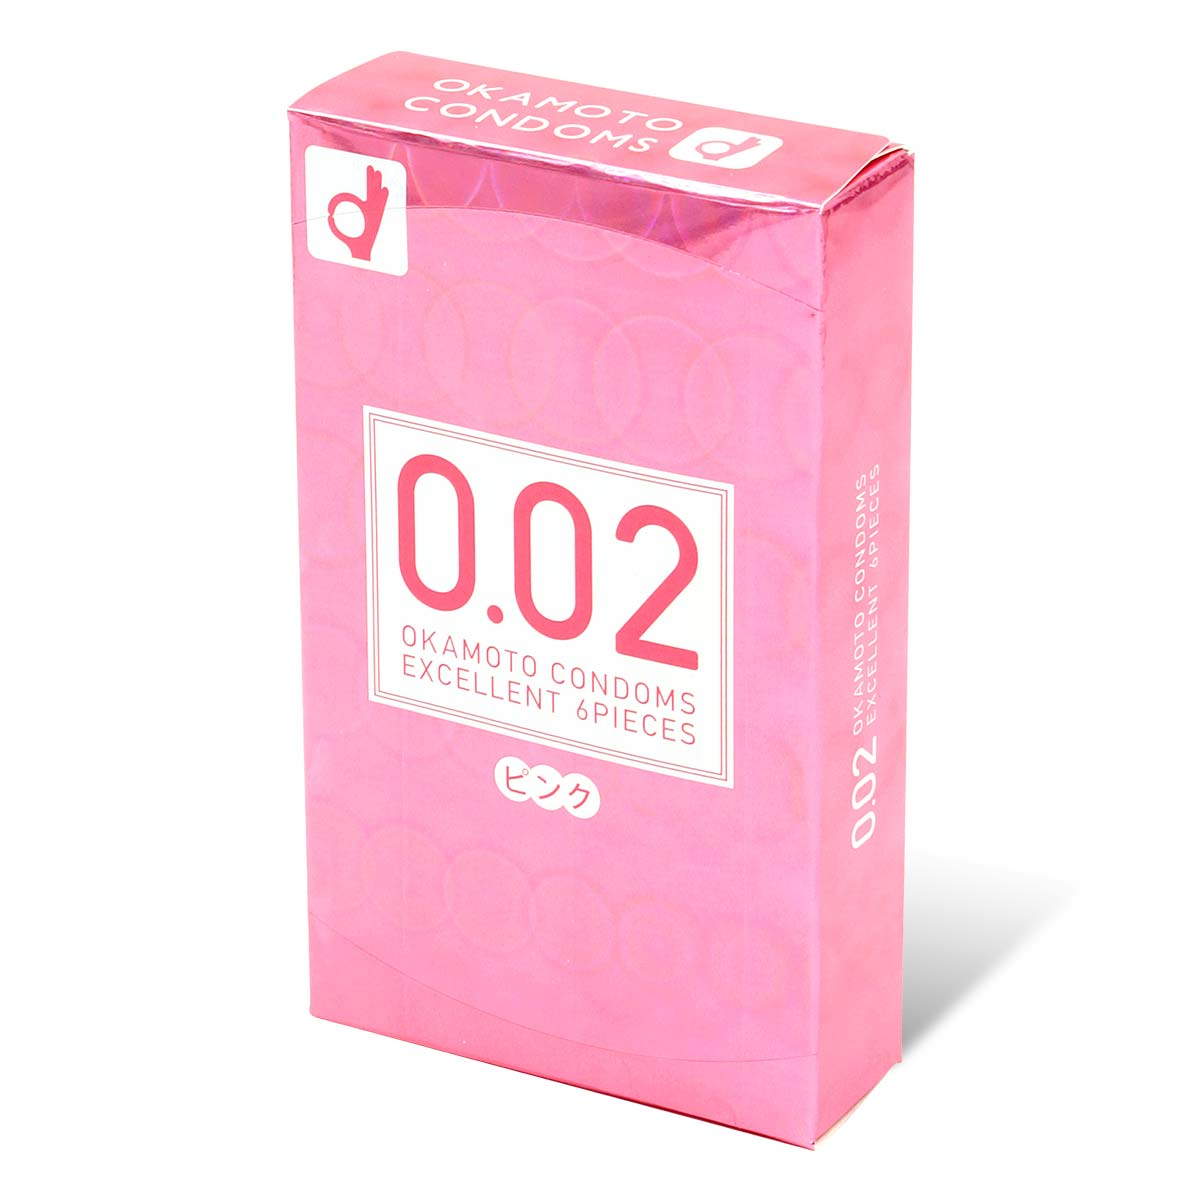 Okamoto Unified Thinness 0.02EX pink colors (Japan Edition) 6's Pack PU Condom